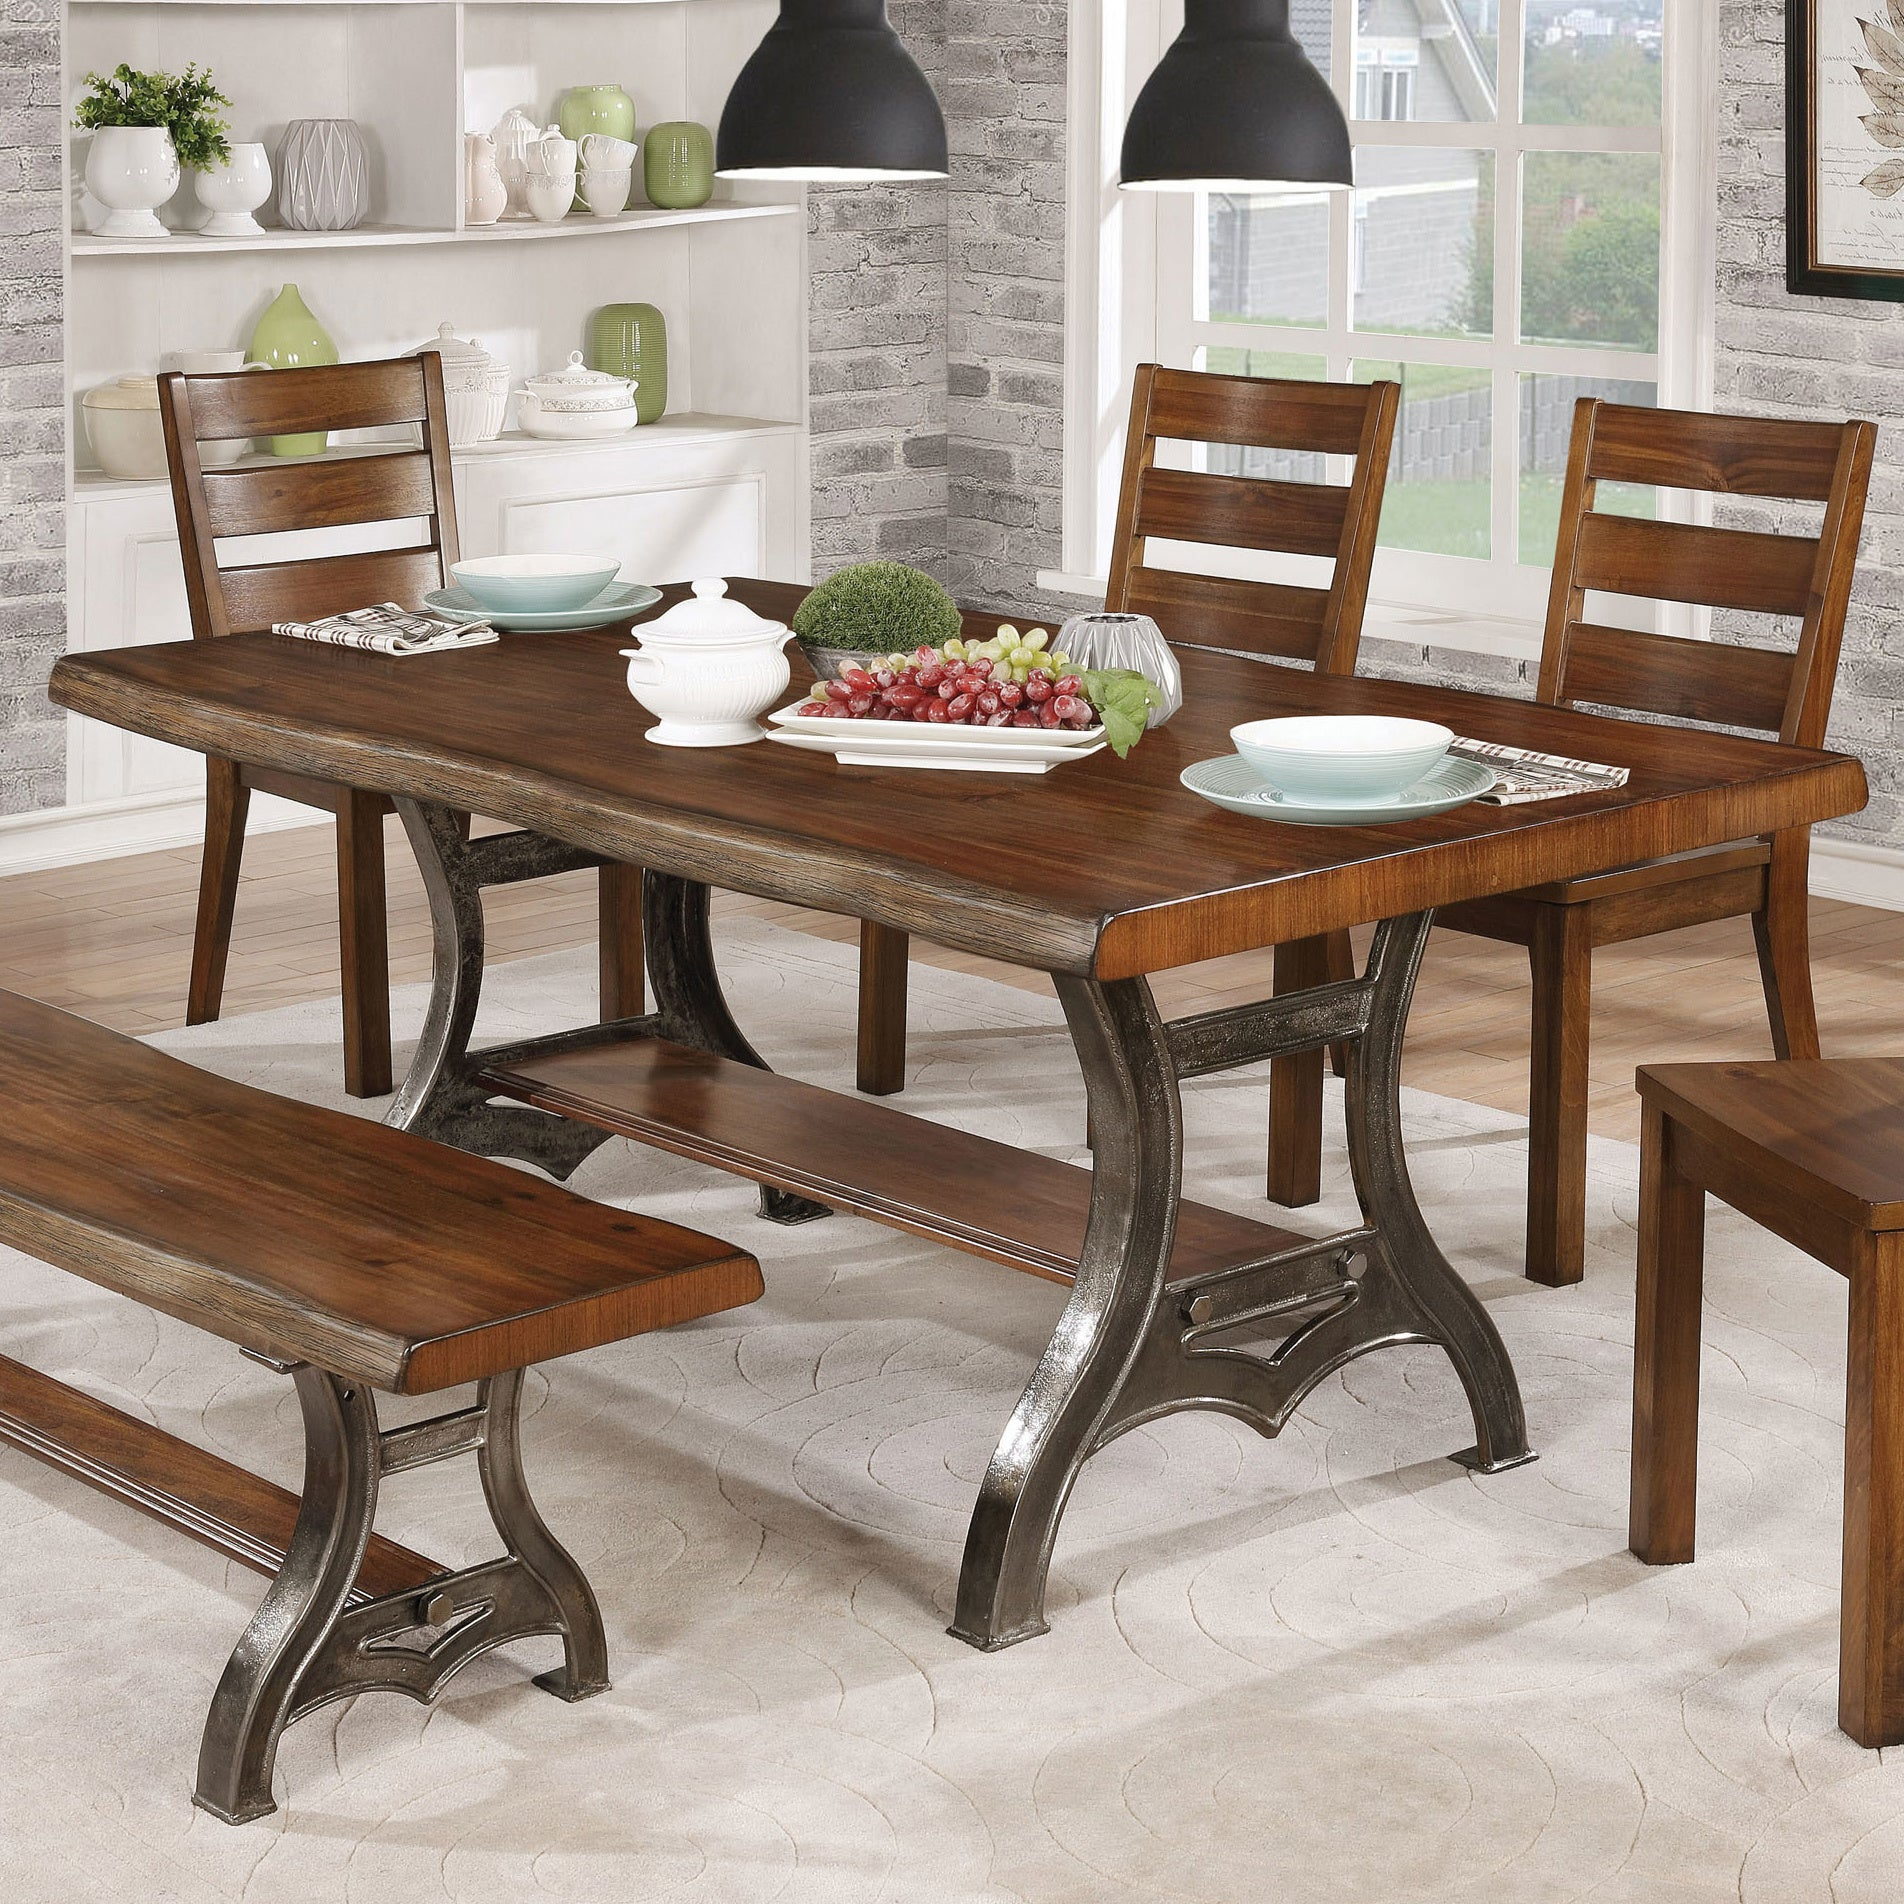 The Gray Barn Maiden Castle 68-inch Brown Cherry Dining Table - Brown Cherry